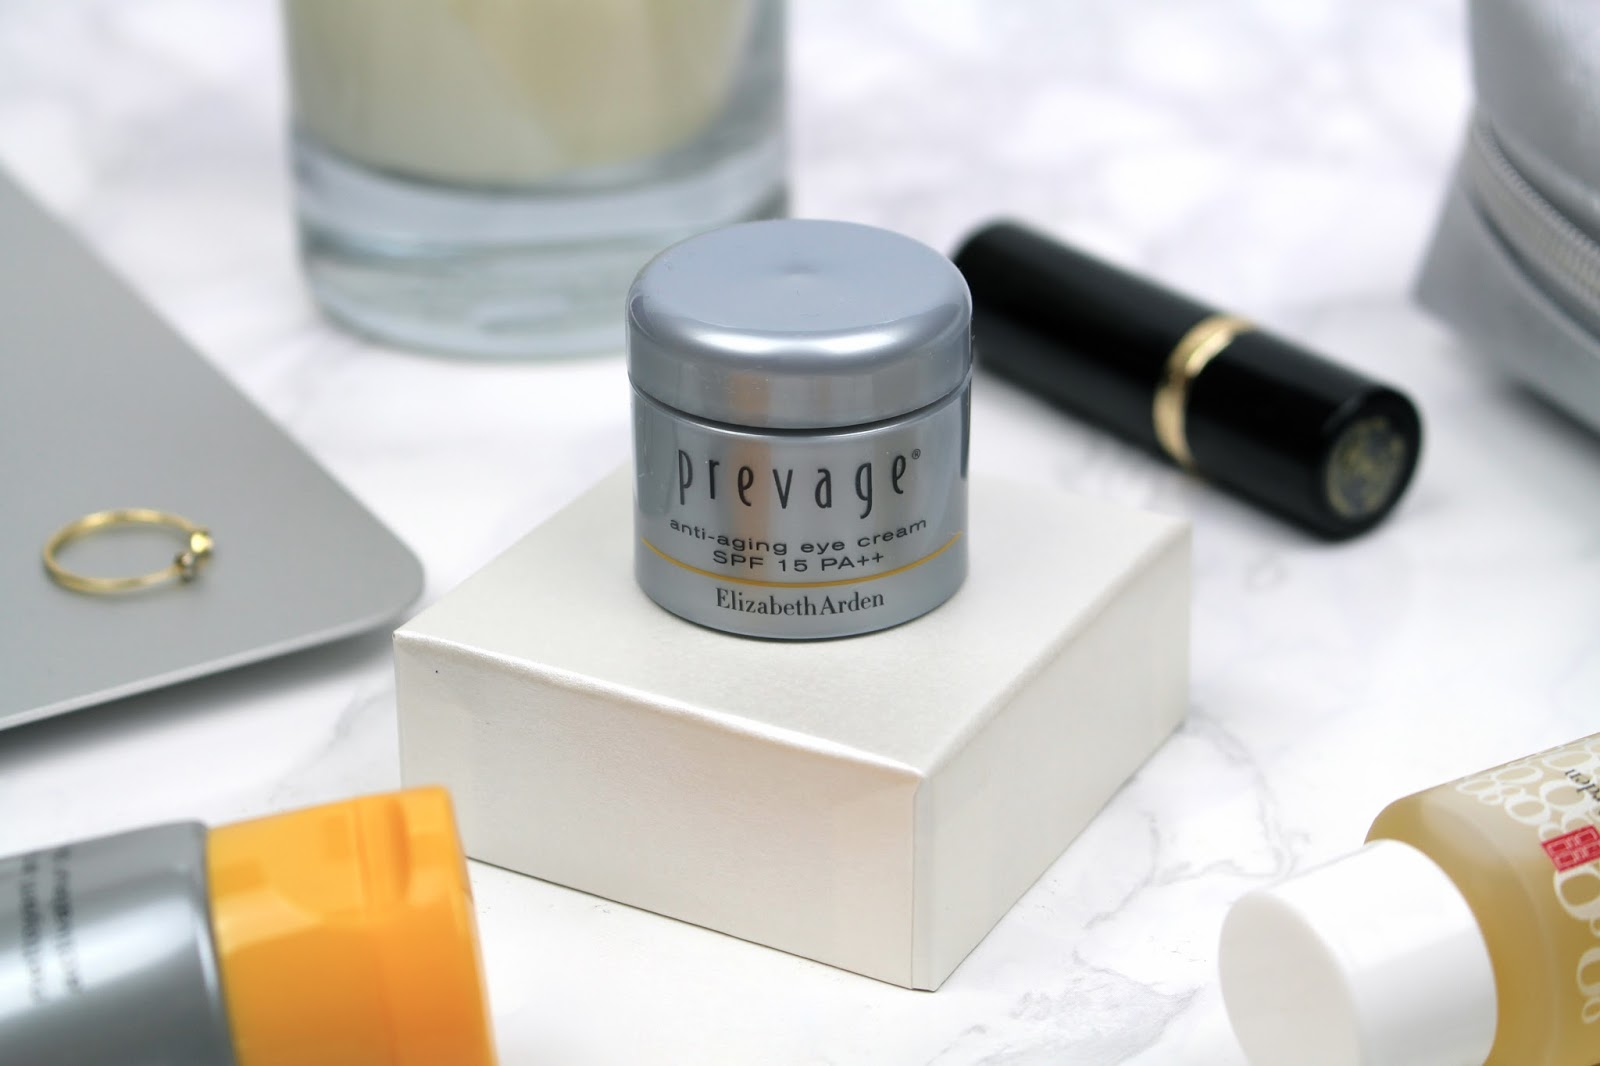 Elizabeth Arden Prevage Anti-Aging Eye Cream blog review